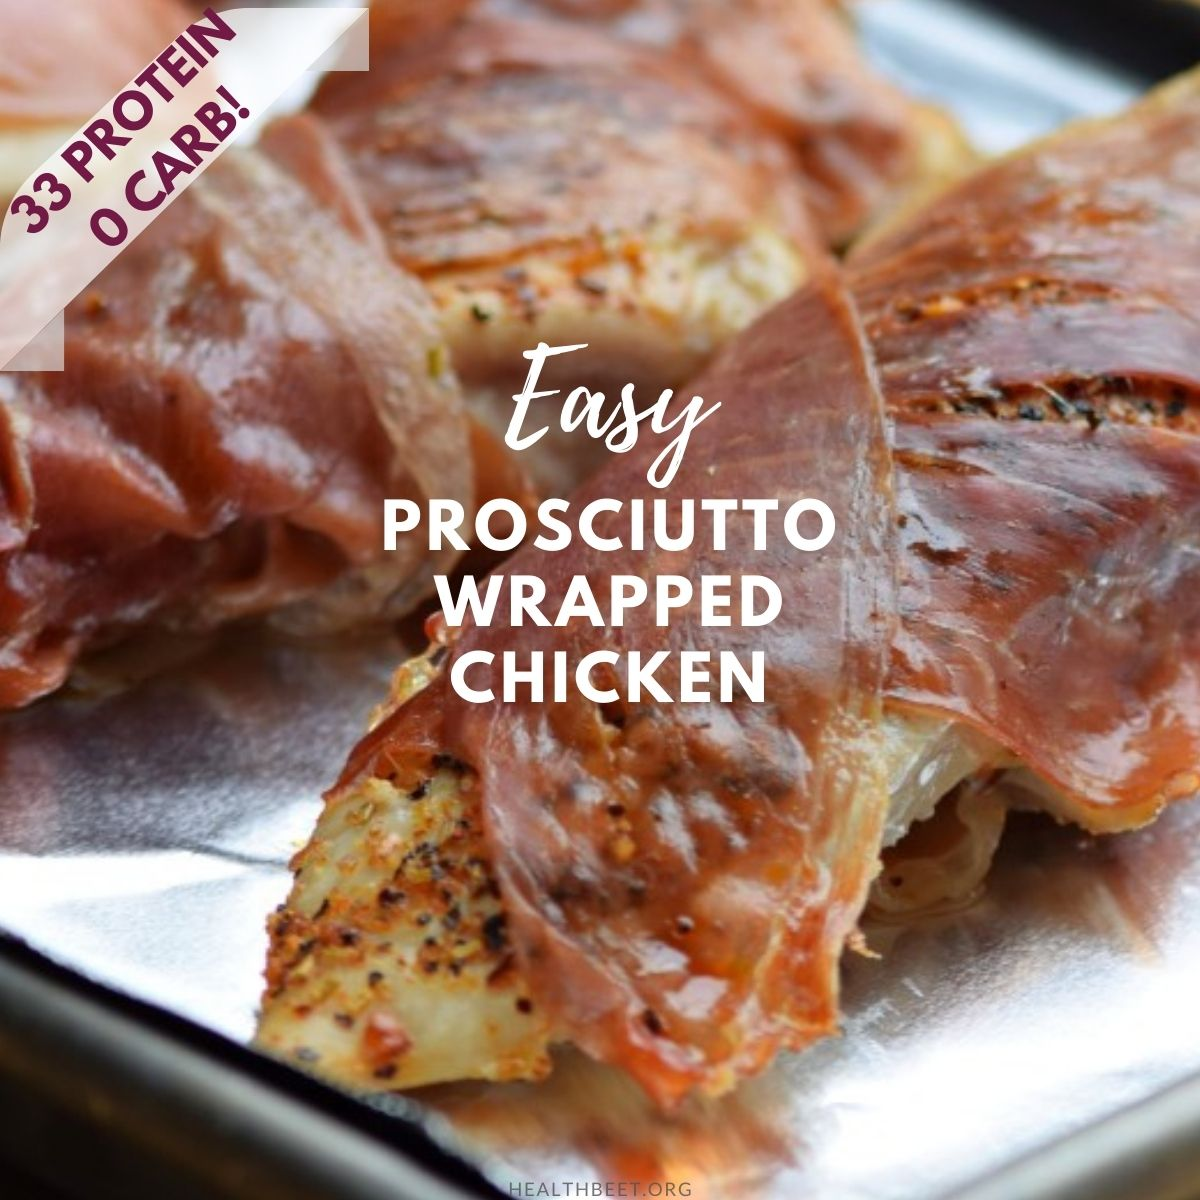 Easy prosciutto wrapped chicken thumbnail